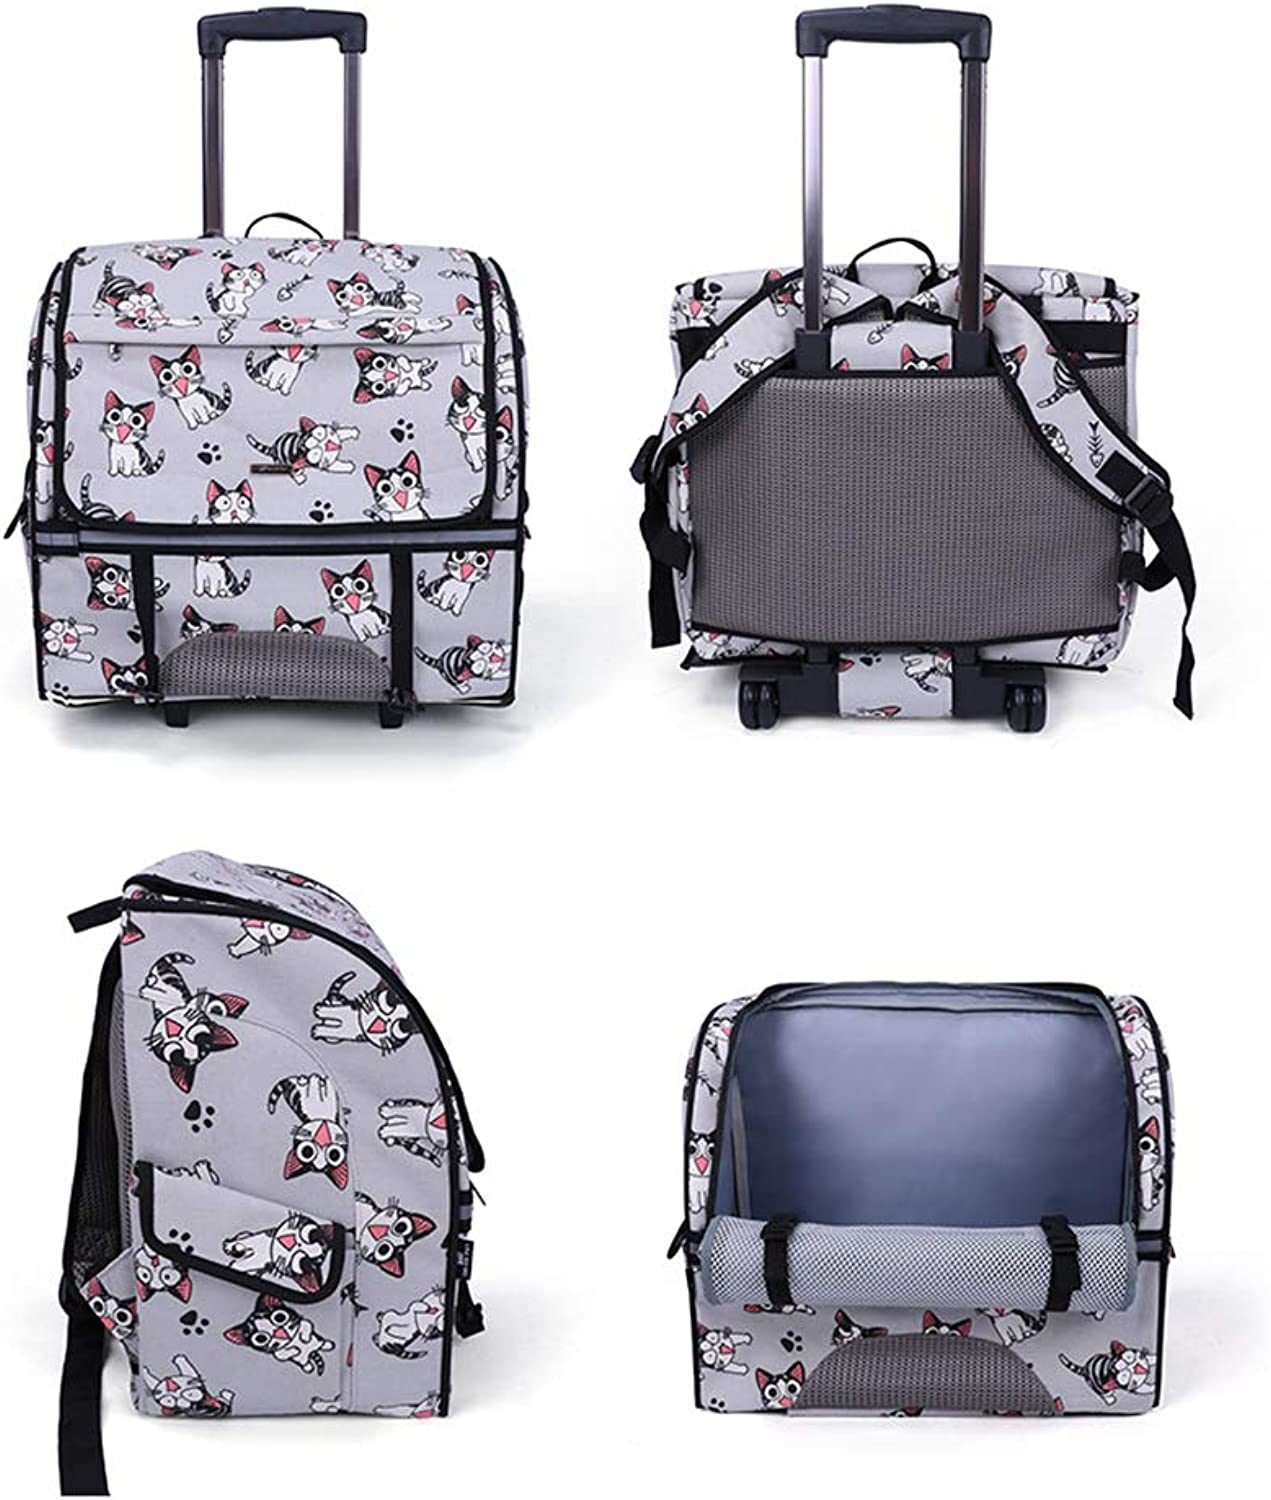 Brtjt Pet Carrier Pet Carrier Dog Pet Carrier Cat HighEnd Pet Trolley Case, Pet Backpack, MultiFunctional Outing Backpack, Pet Backpack, Trolley Case, Cat and Dog Universal,Cat